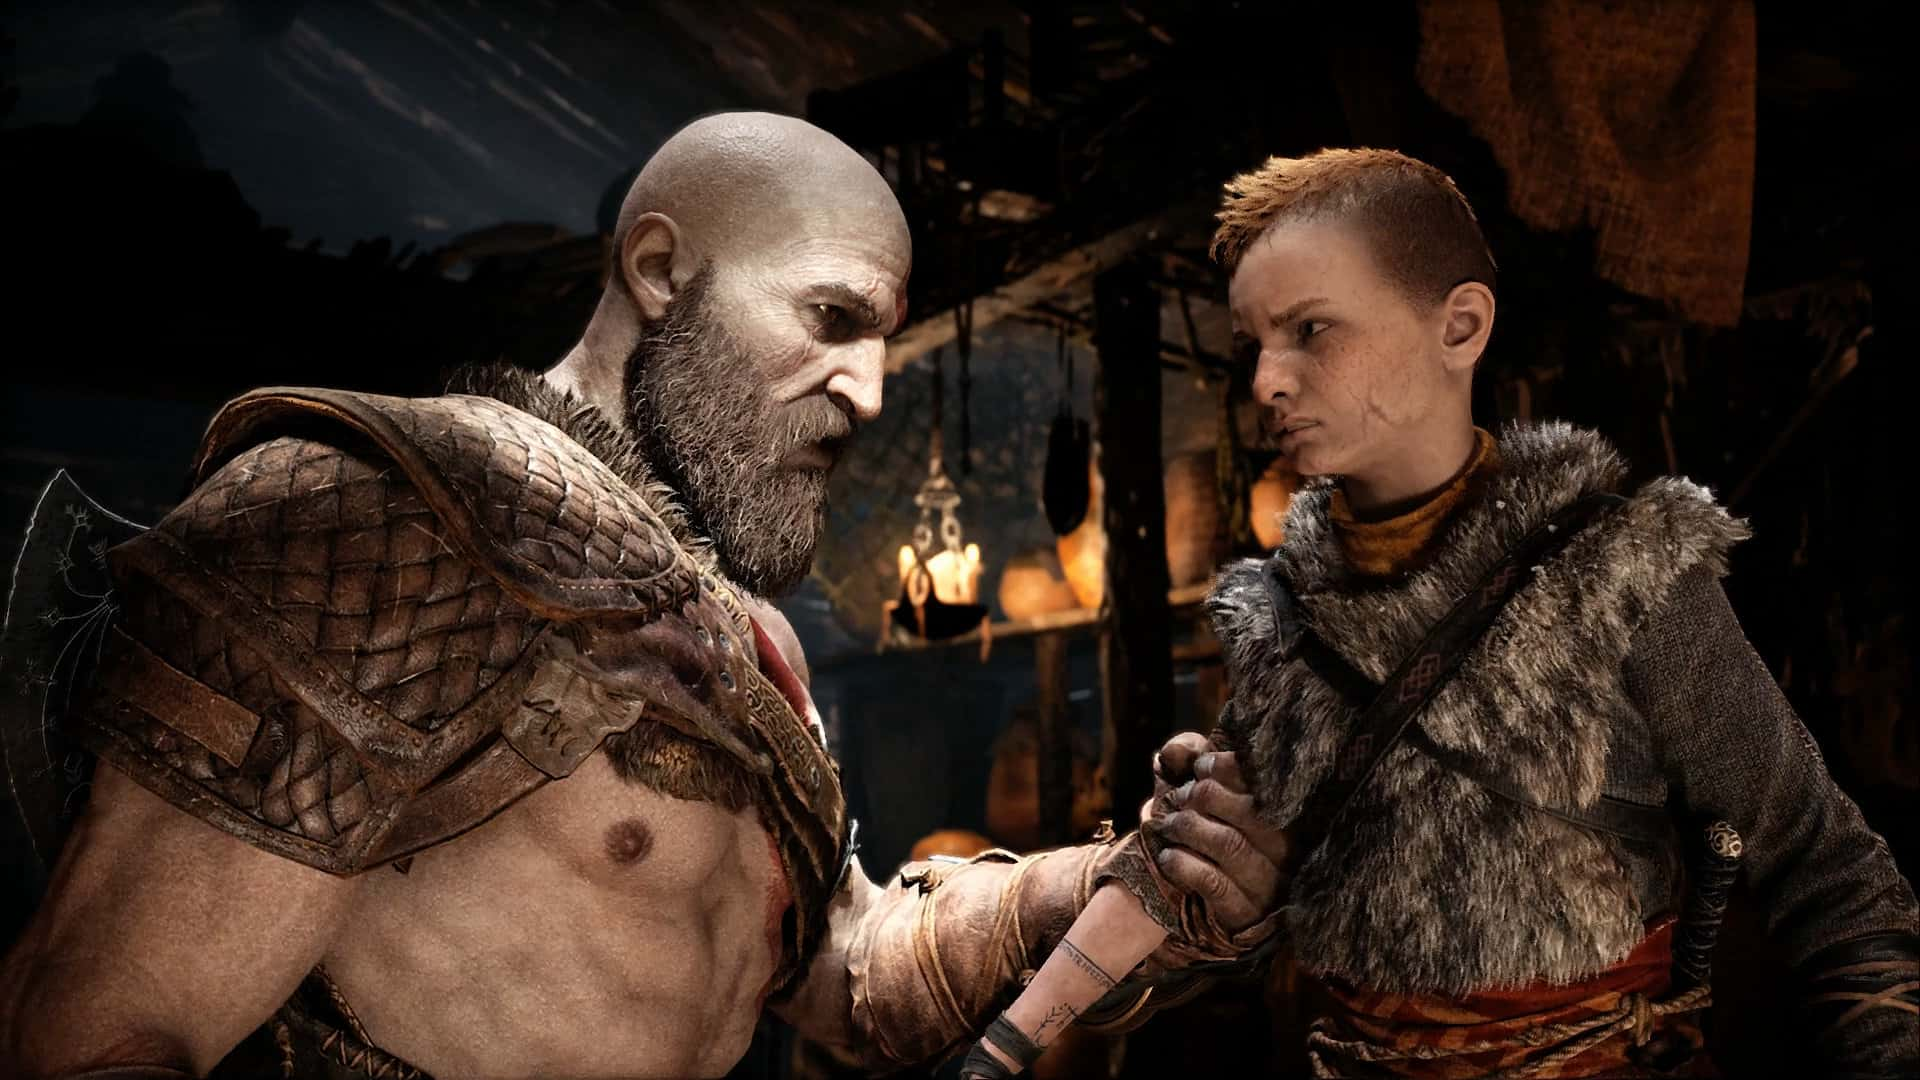 Who Are The Voice Actors In God Of War